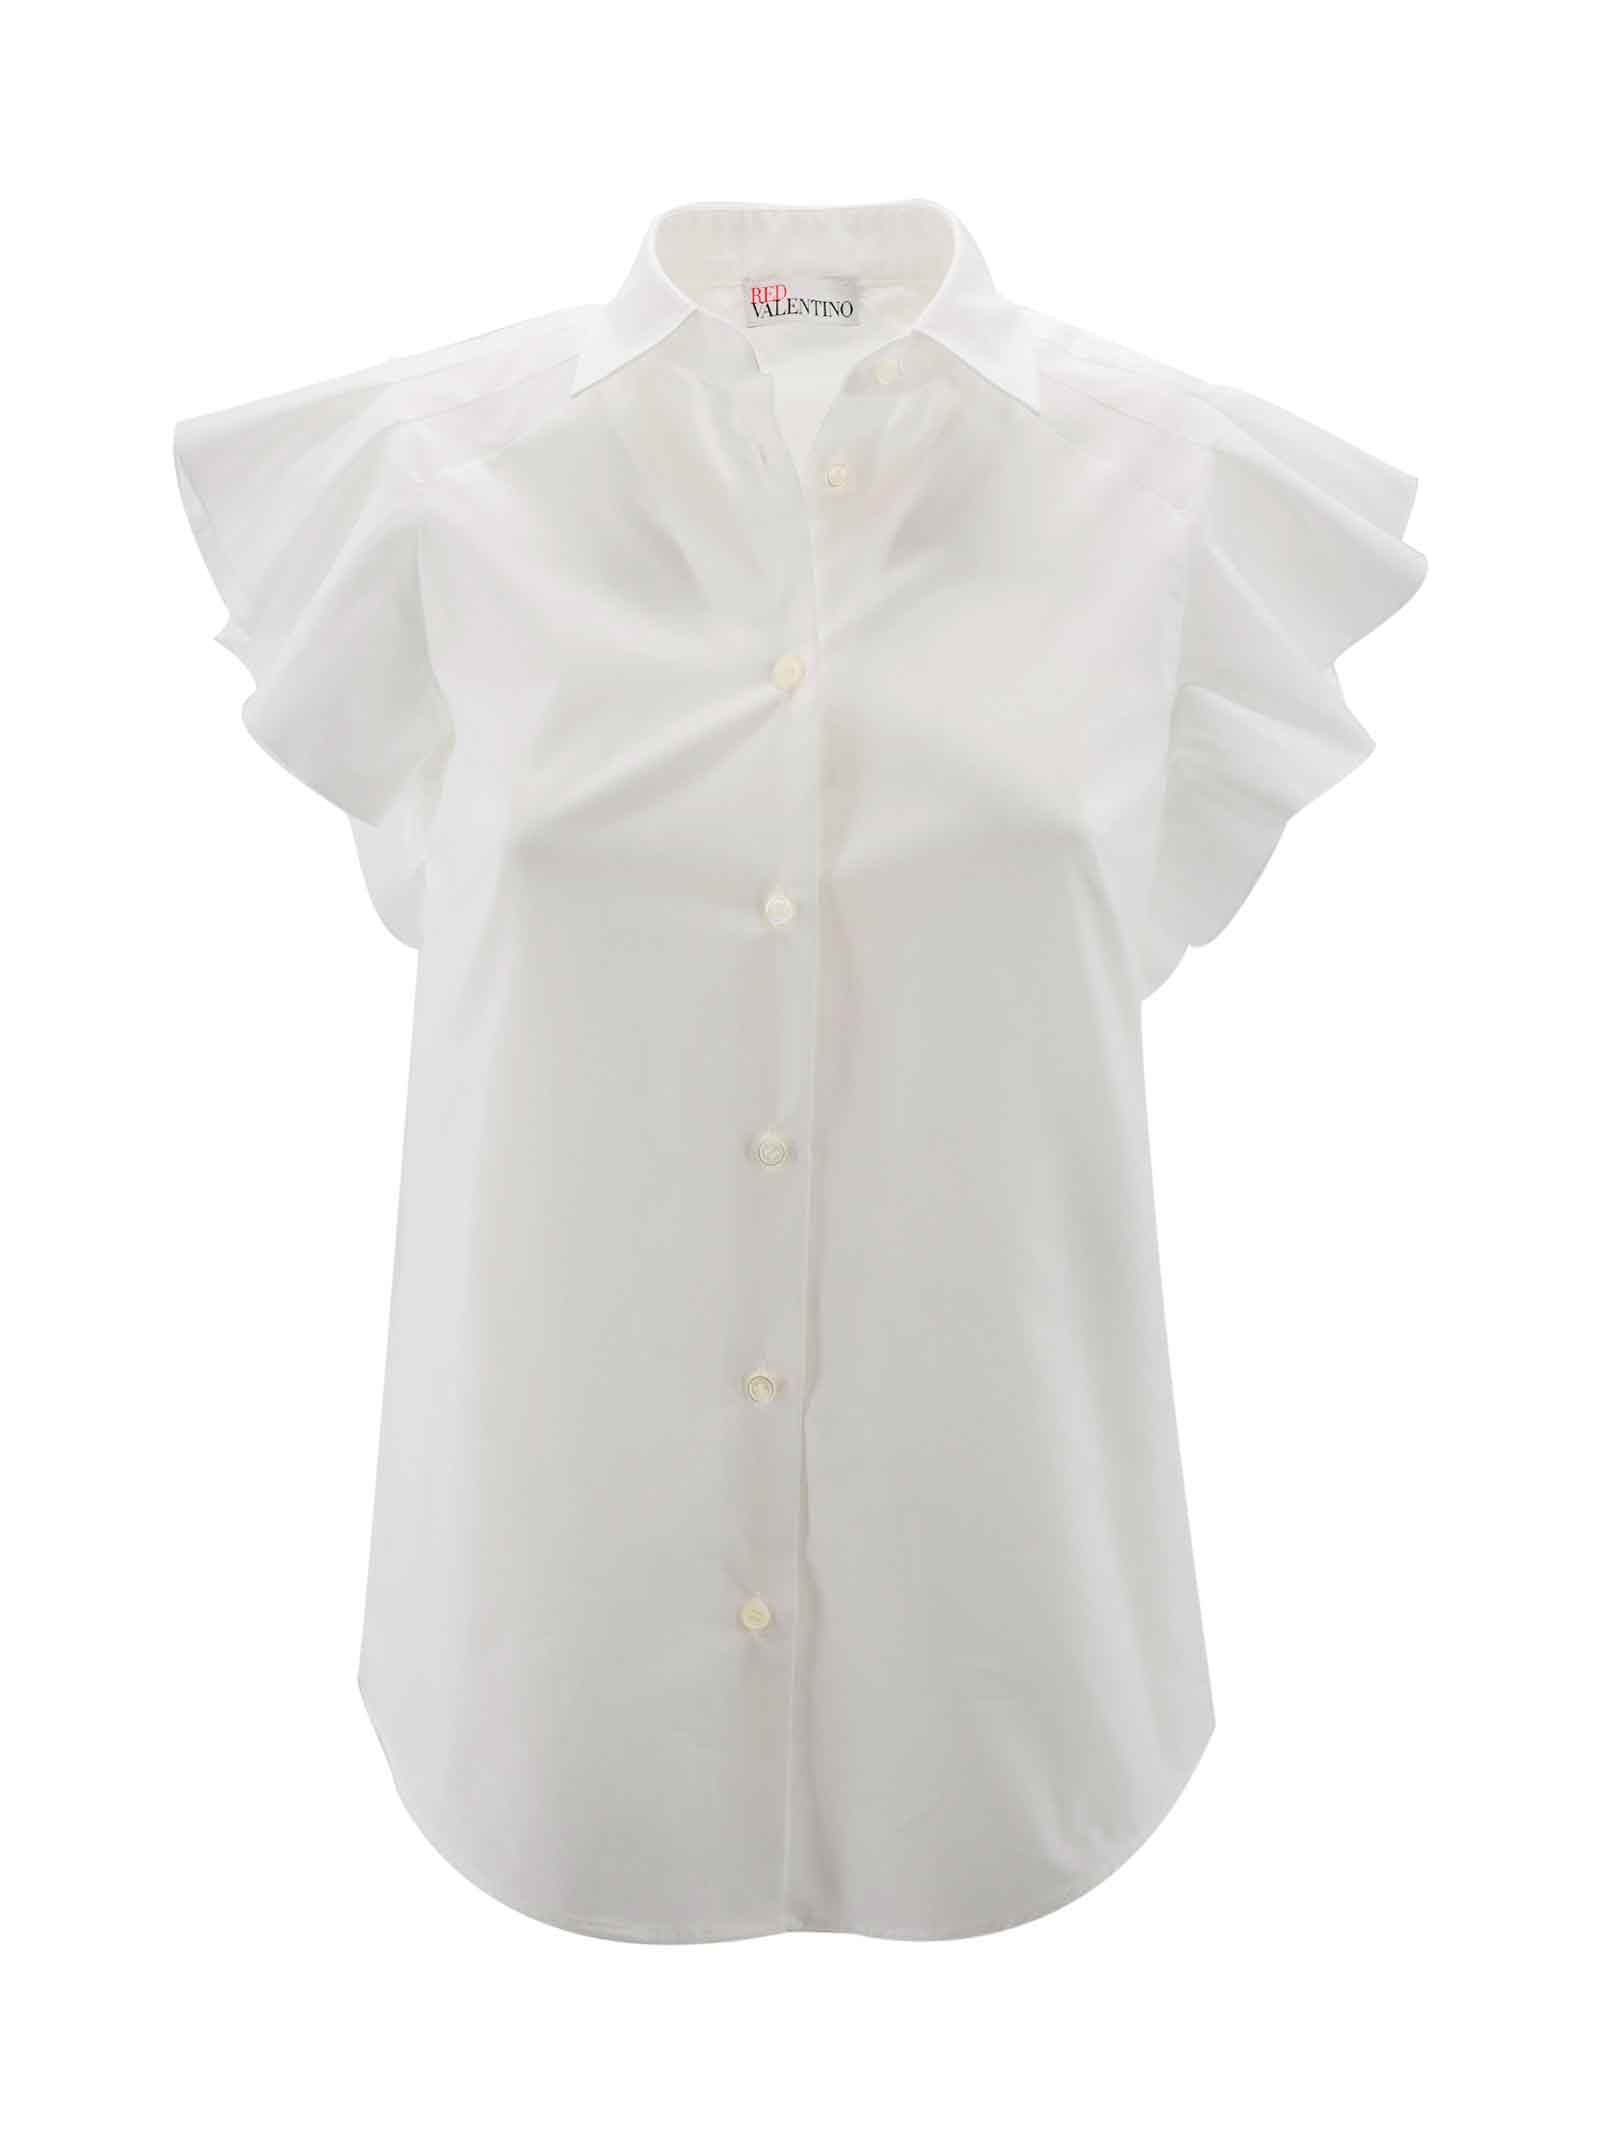 Red Valentino Tops COTTON BLEND TOP